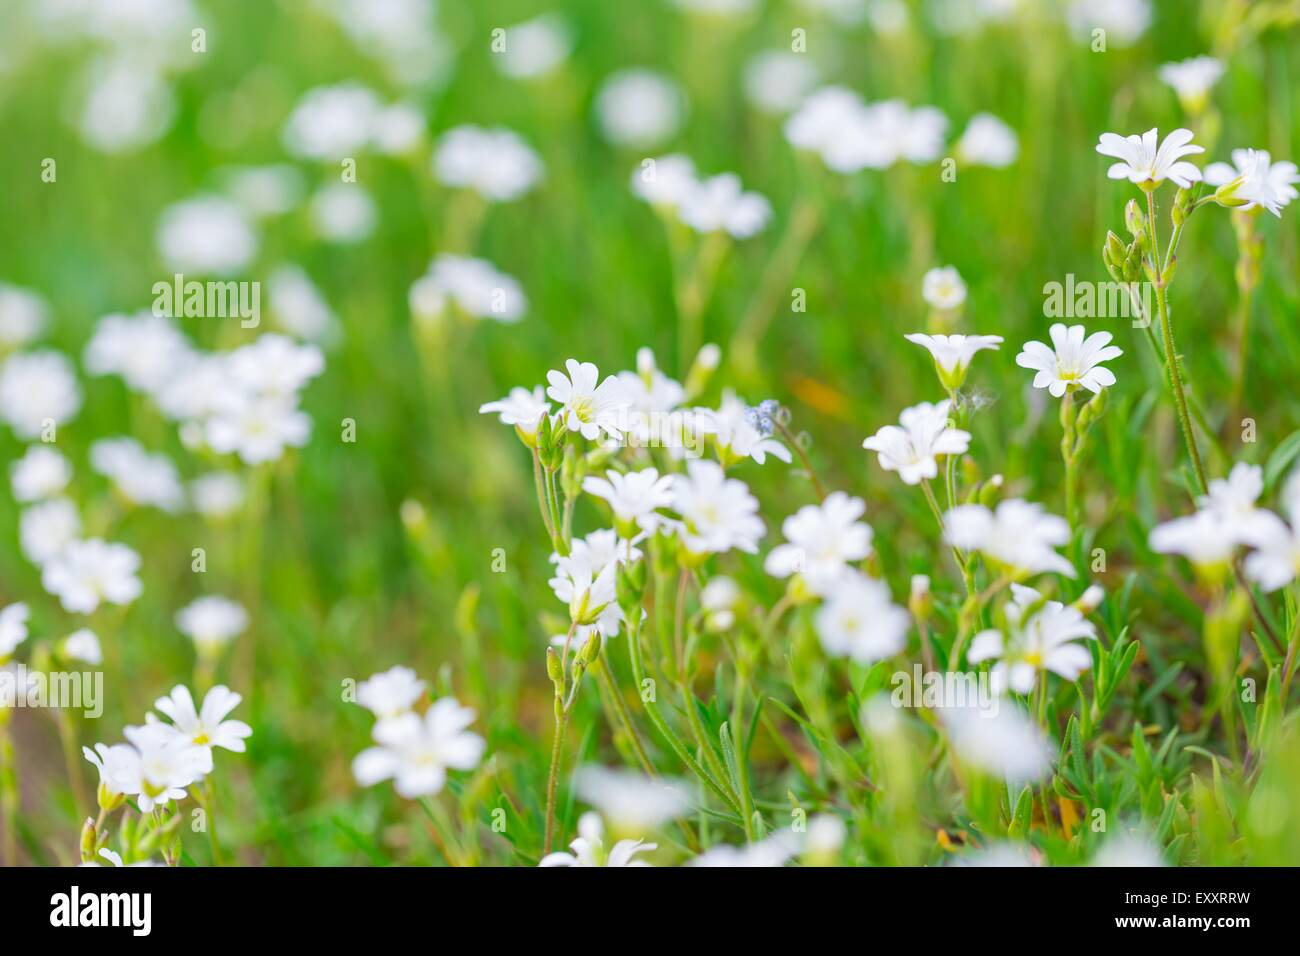 Blooming White Flowers Of Chickweed In Green Grass Nature